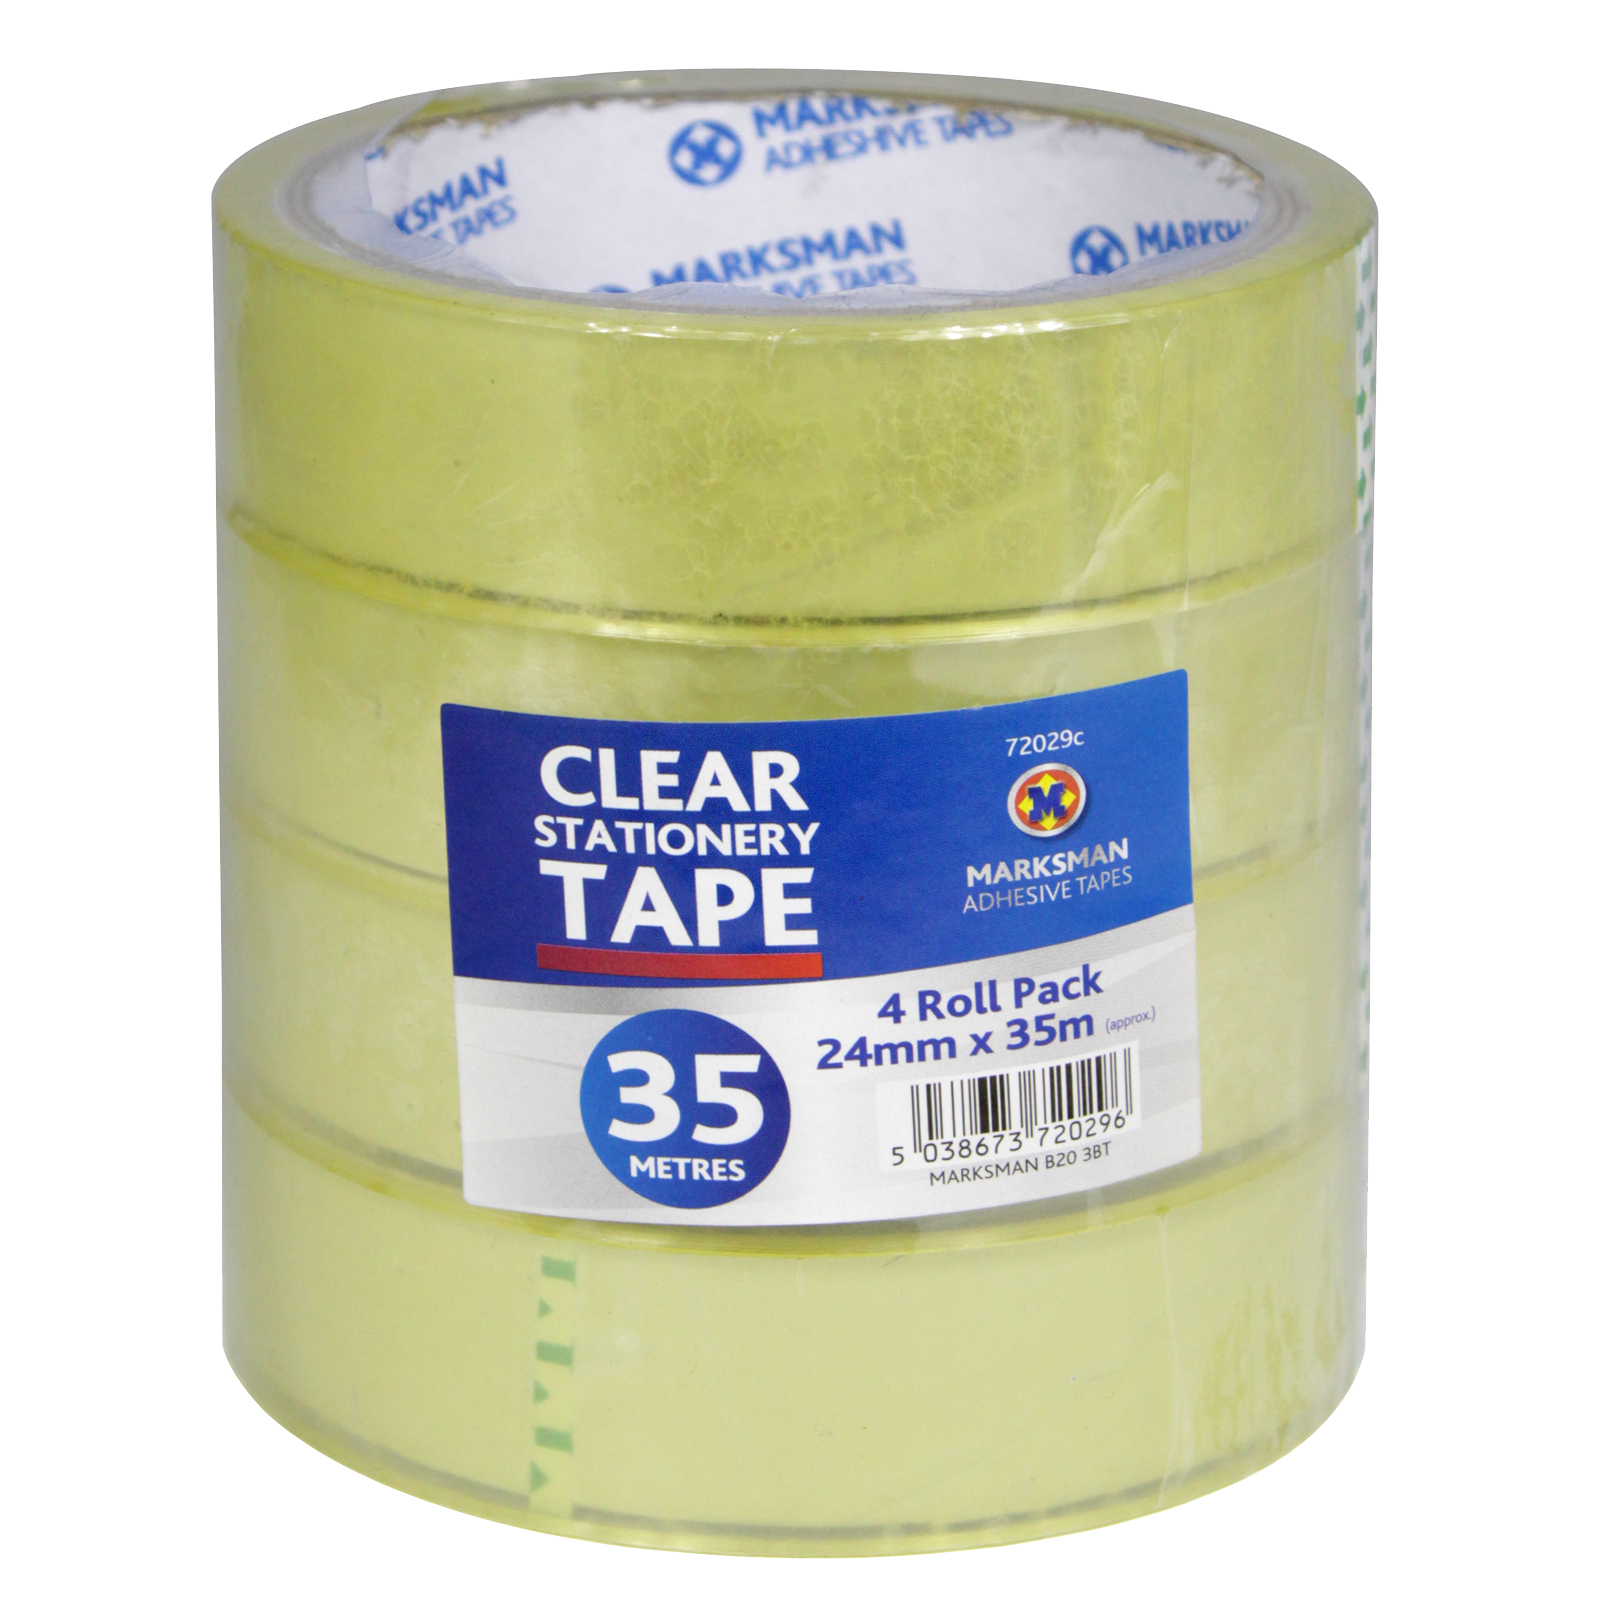 CLEAR STATIONERY TAPE 4X24MMX35M